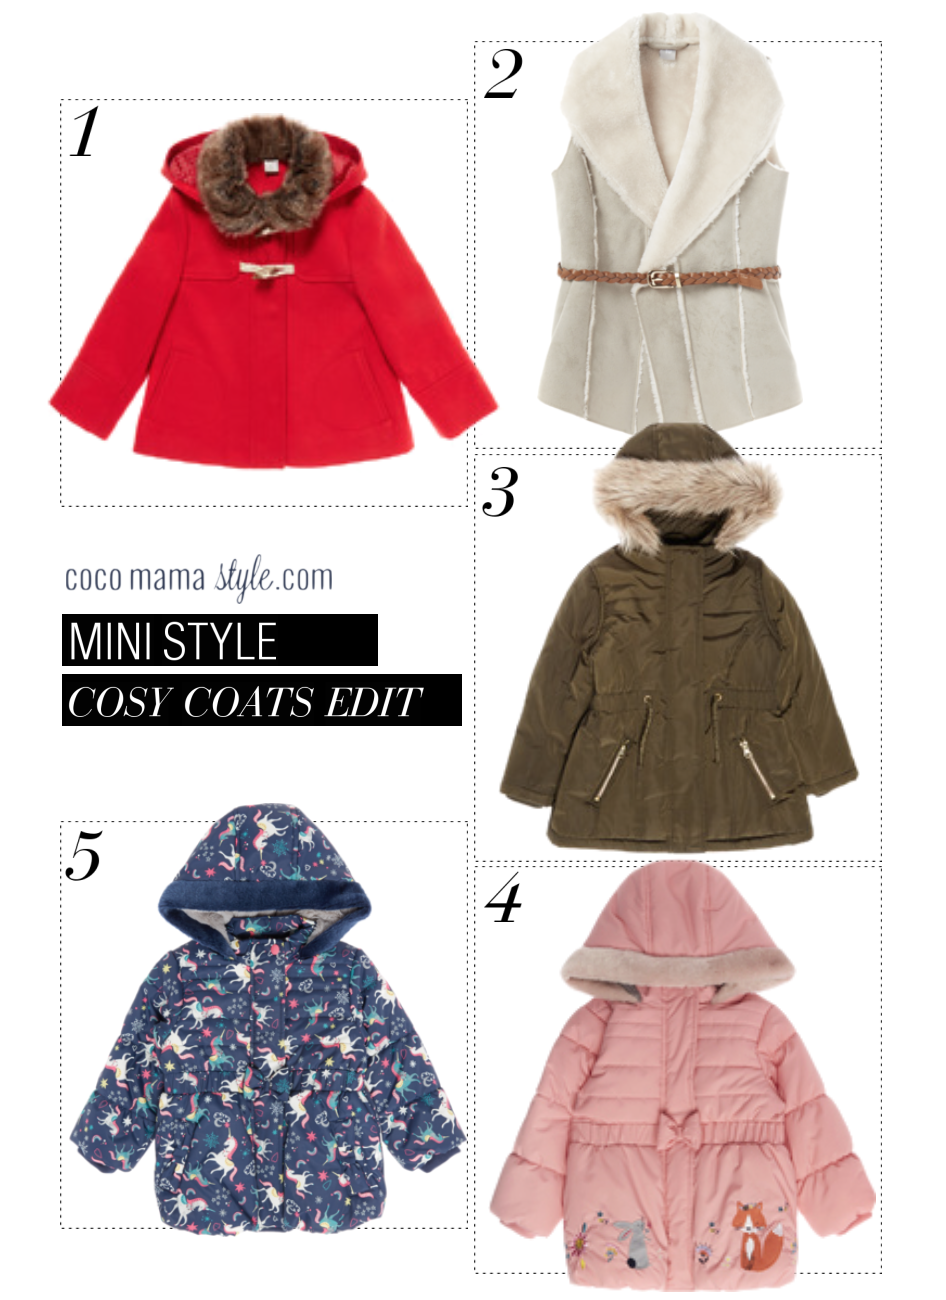 TU girls coat | cocomamastyle